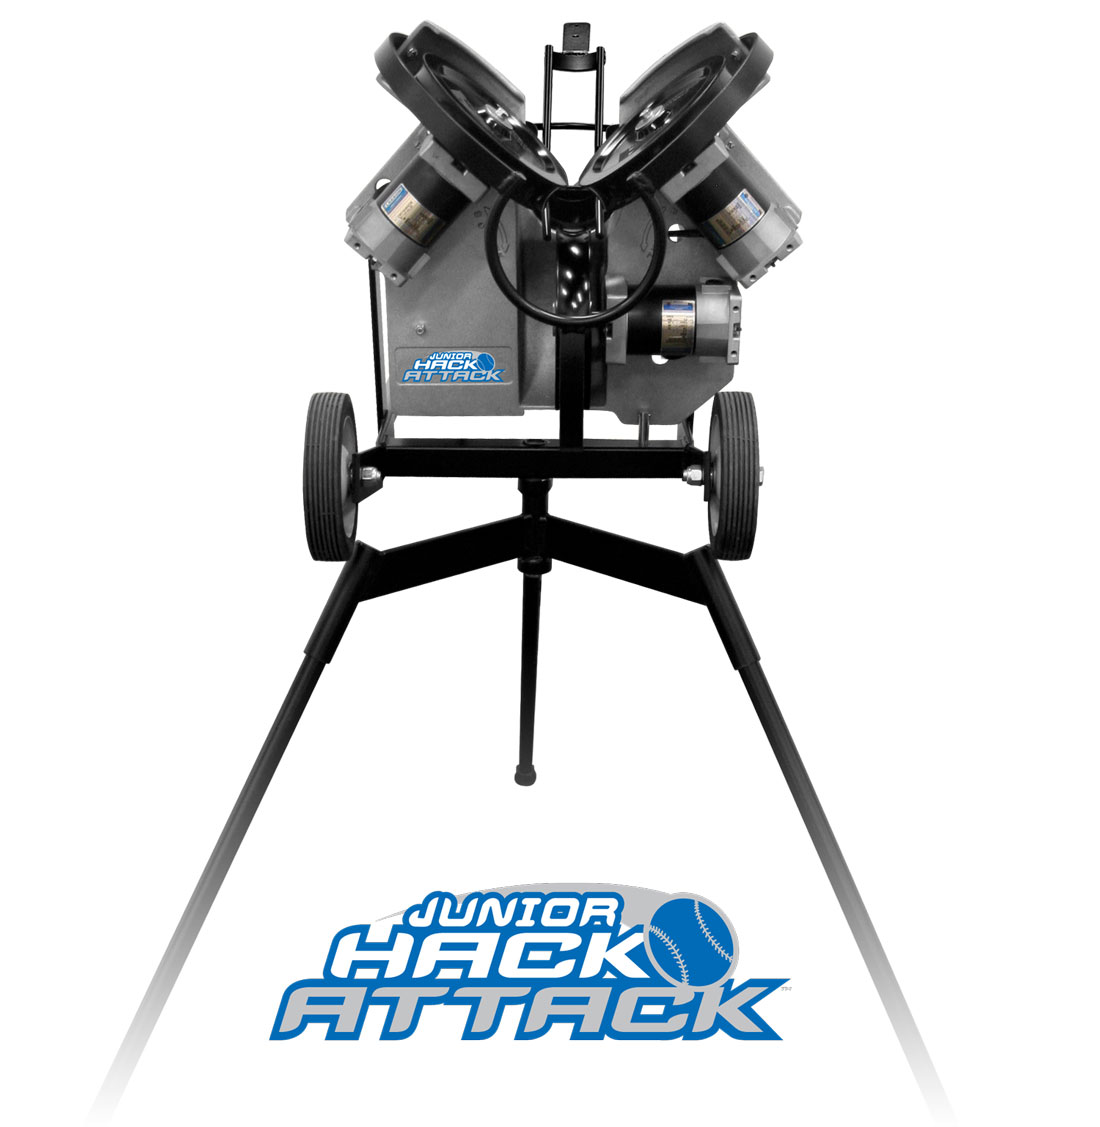 Packaging or Promotional image for Junior Hack Attack Baseball Pitching Machine